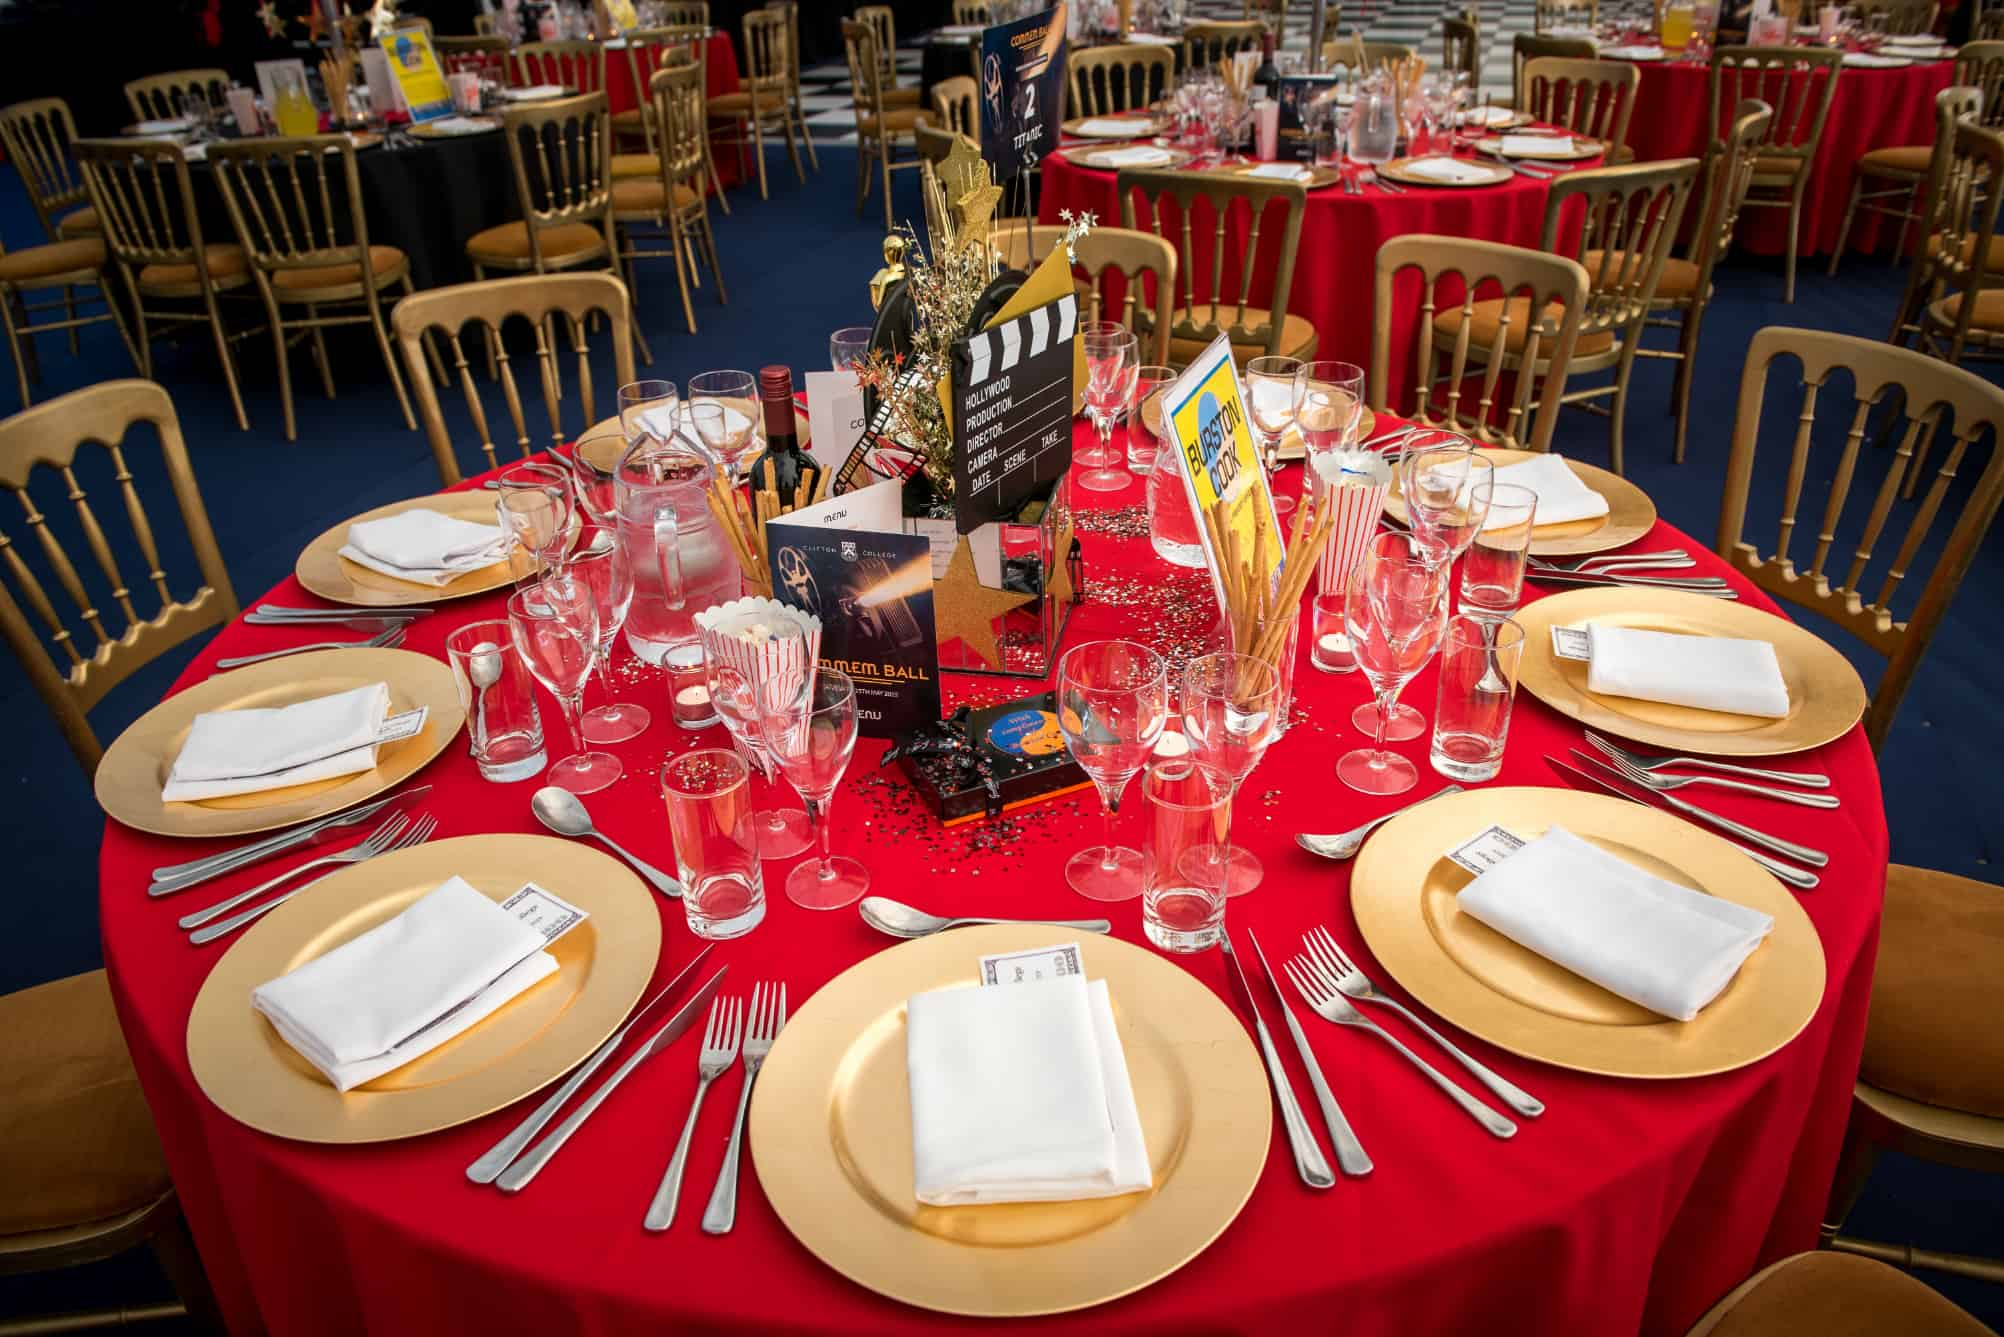 Red and gold table settings